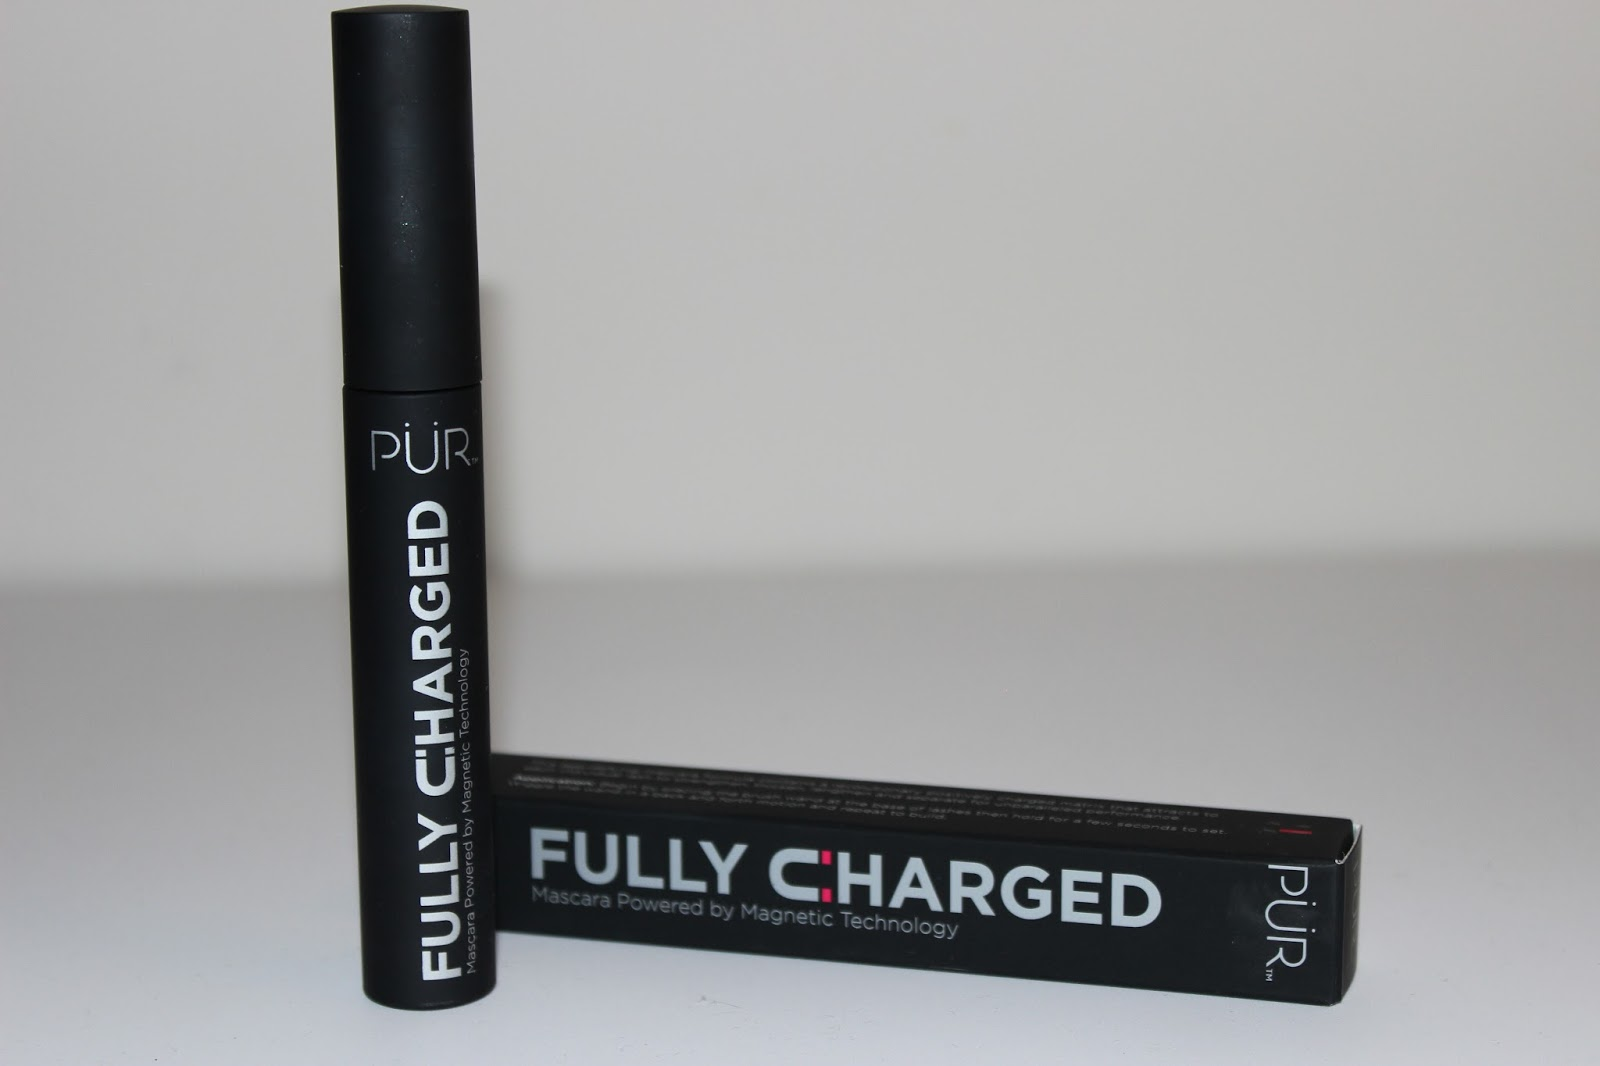 Pur Cosmetics Fully Charged Mascara review